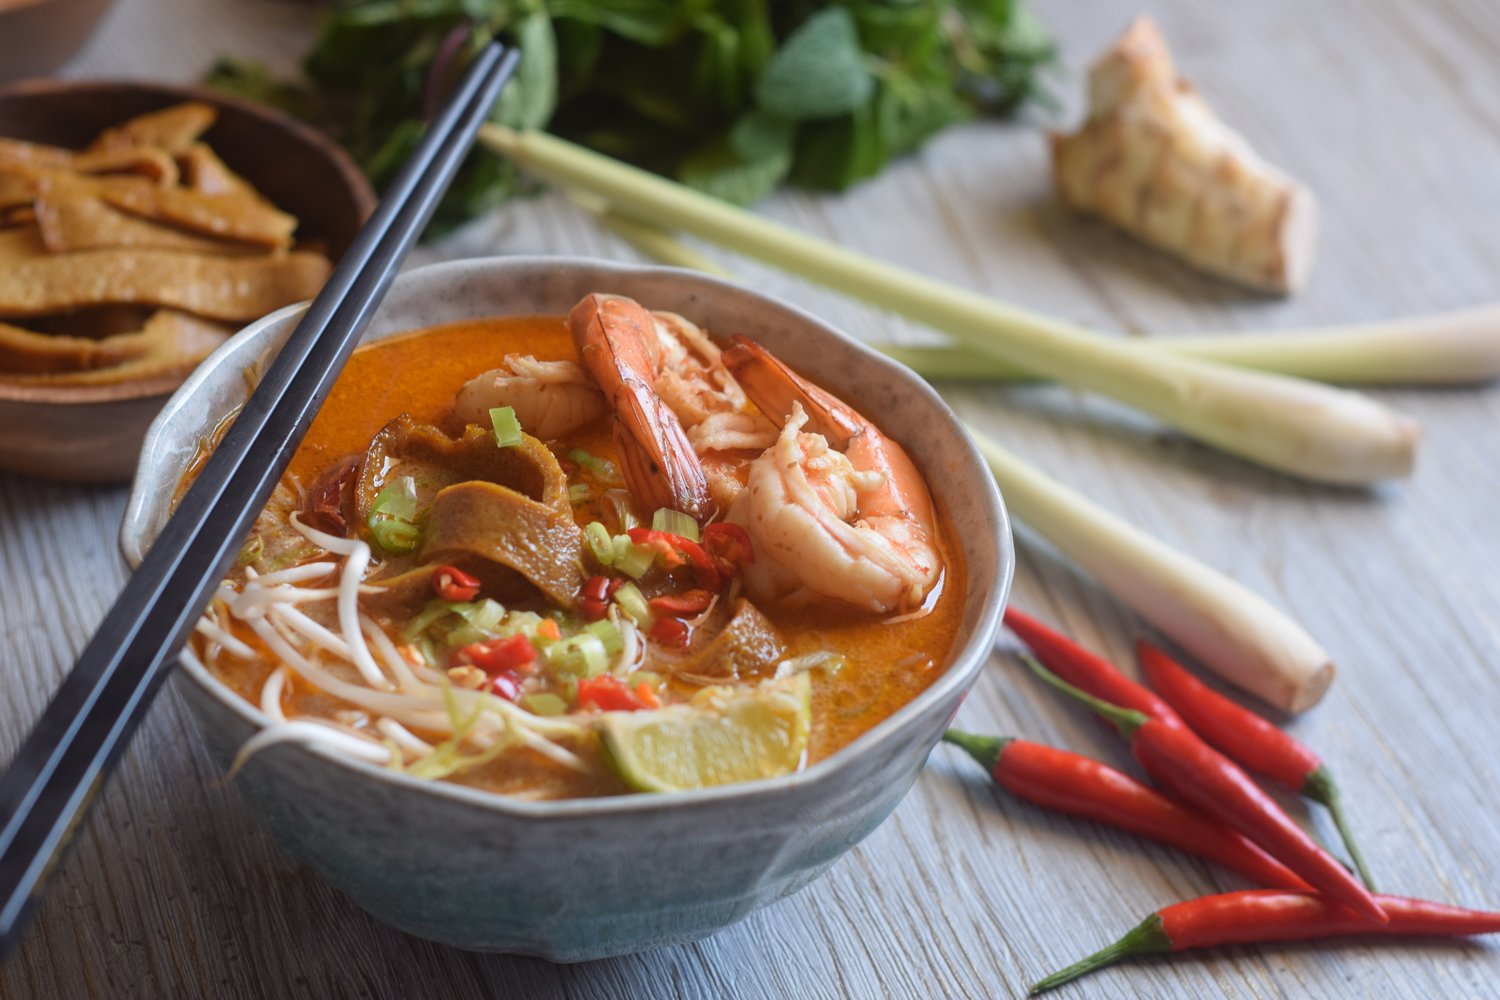 Kuching Style Laksa Recipe by Anthony Bourdain (serves 4)